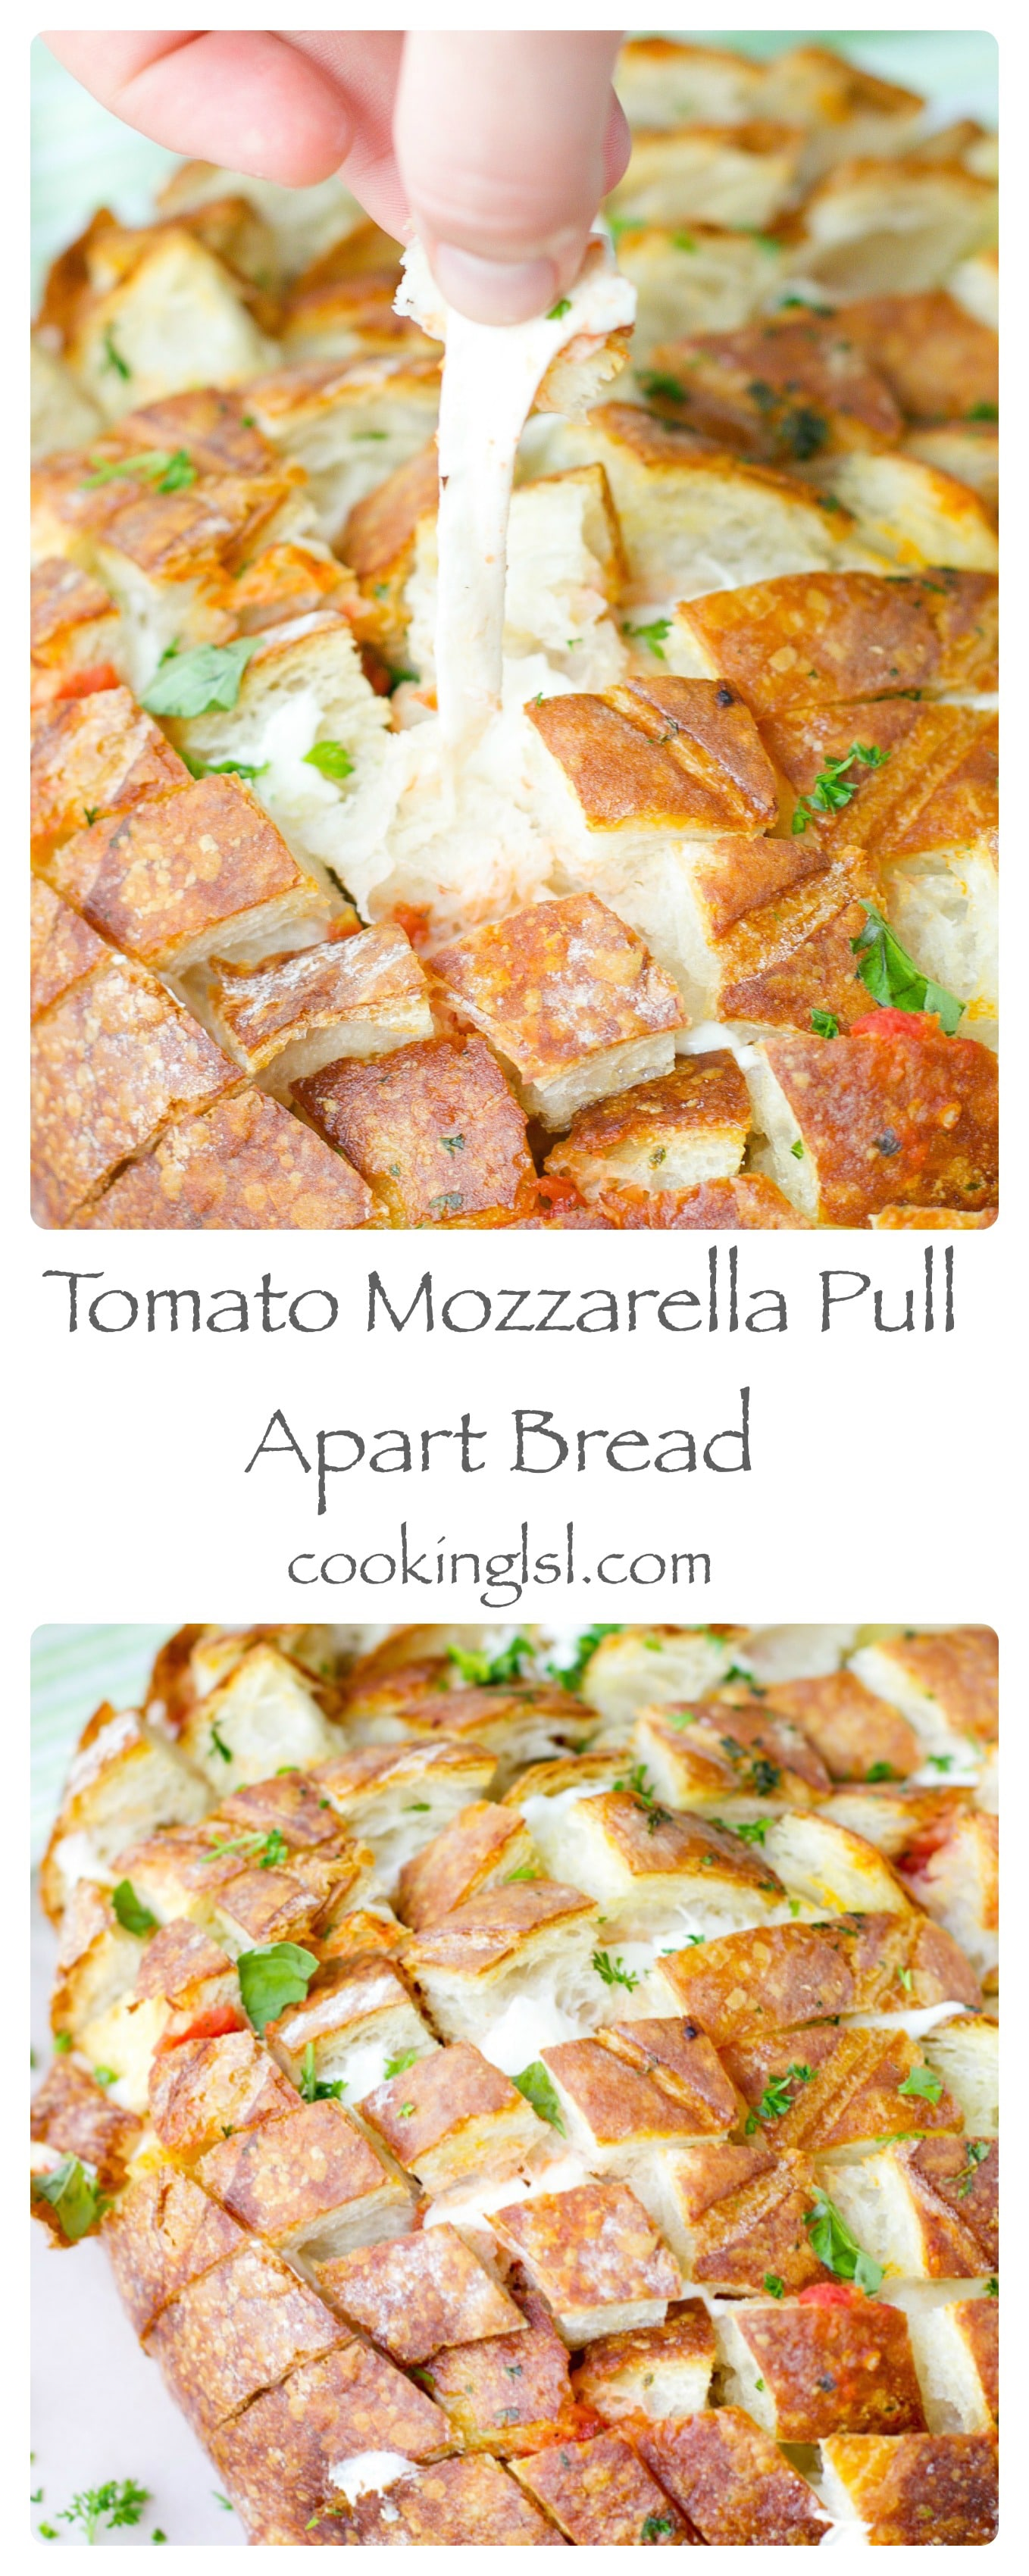 easy-cheesy-tomato-mozzarella-caprese-pull-apart-bread-crowd-pleaser